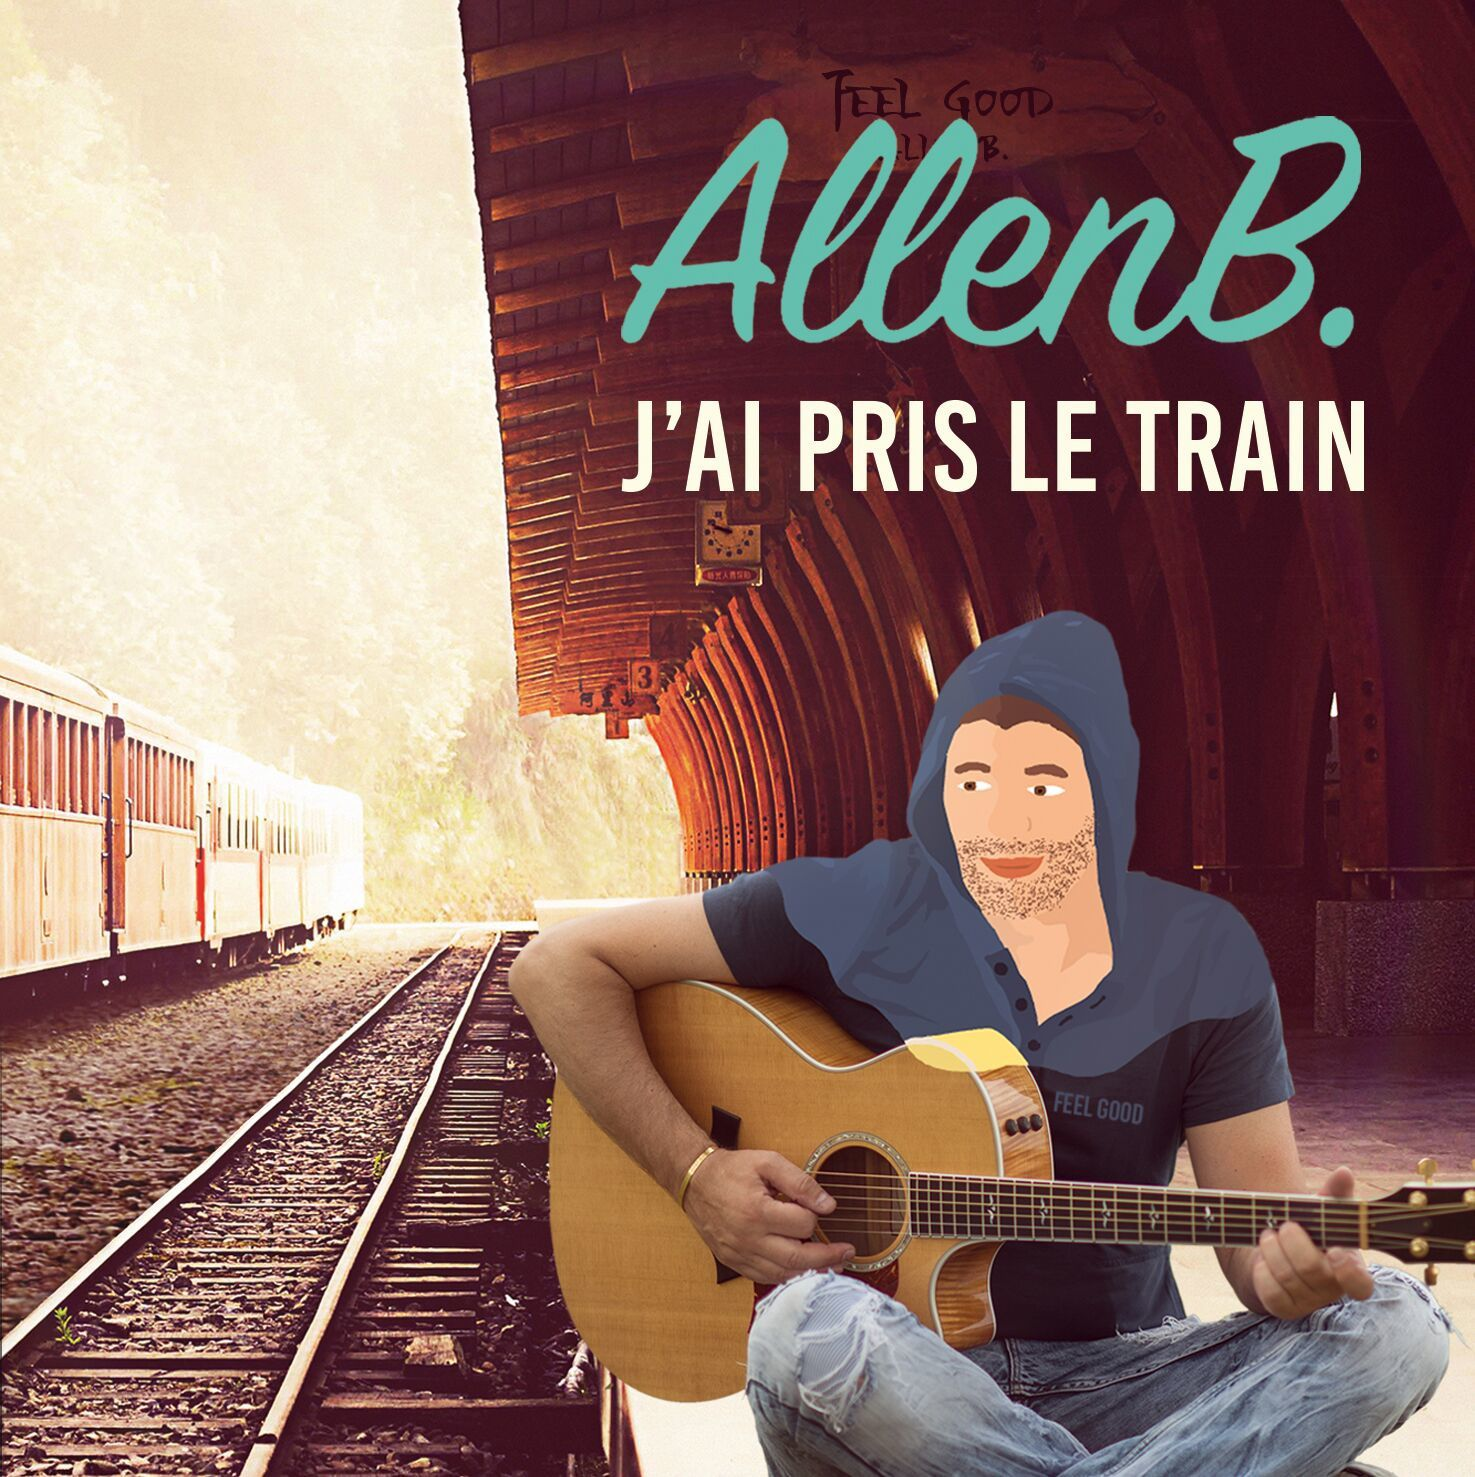 allen b, j'ai pris le train, nrj, hits